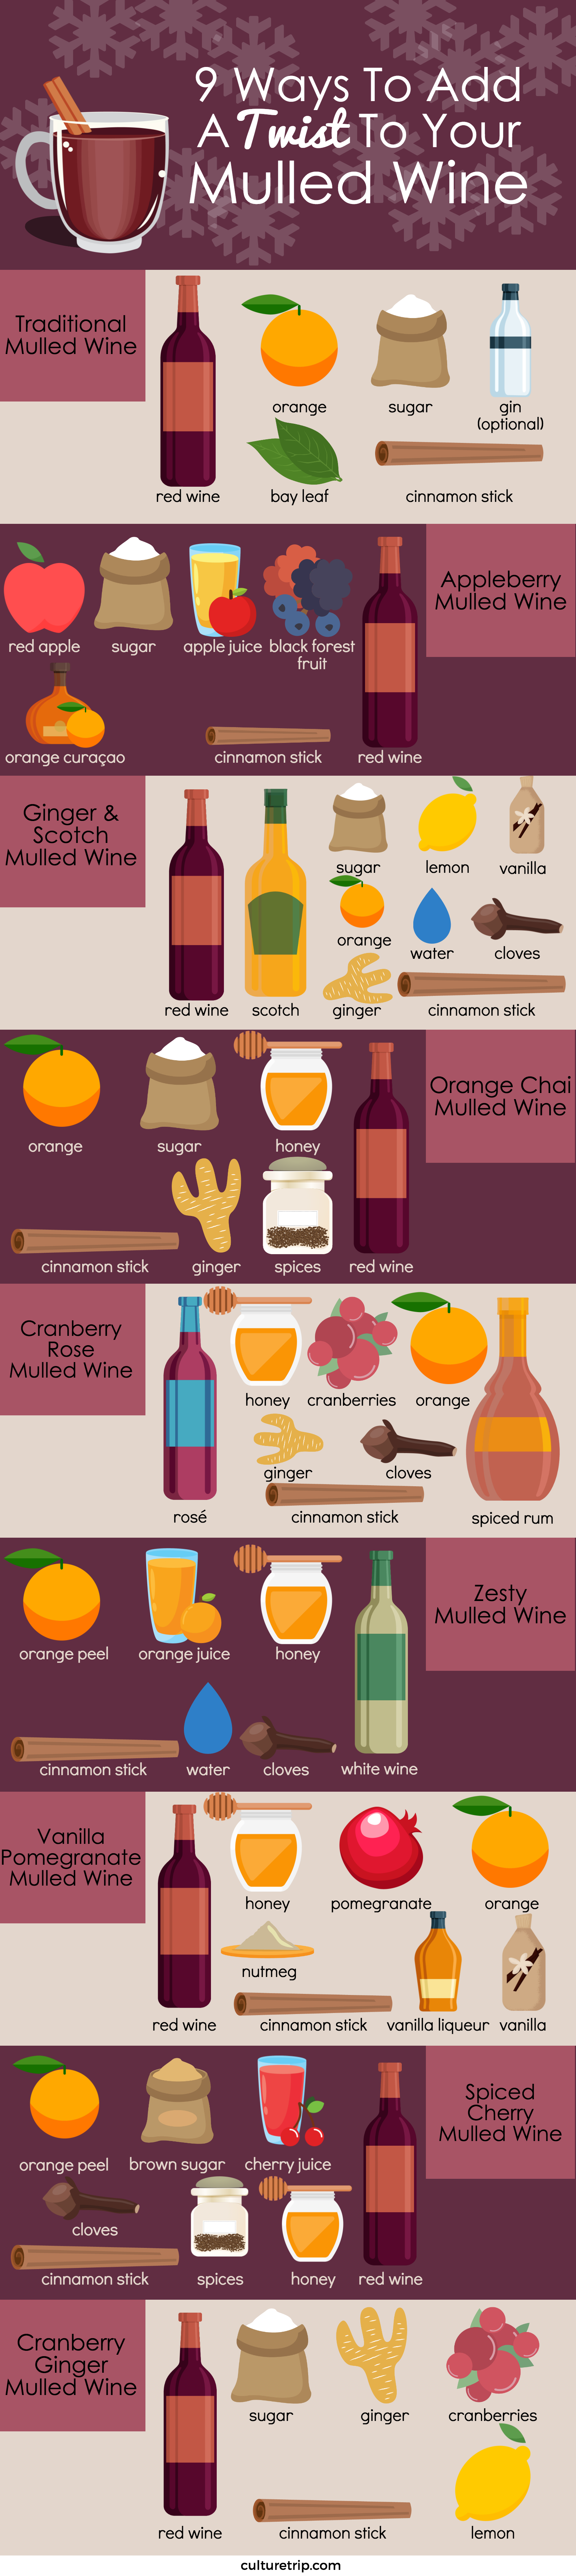 9 Ways To Add A Twist To Your Mulled Wine